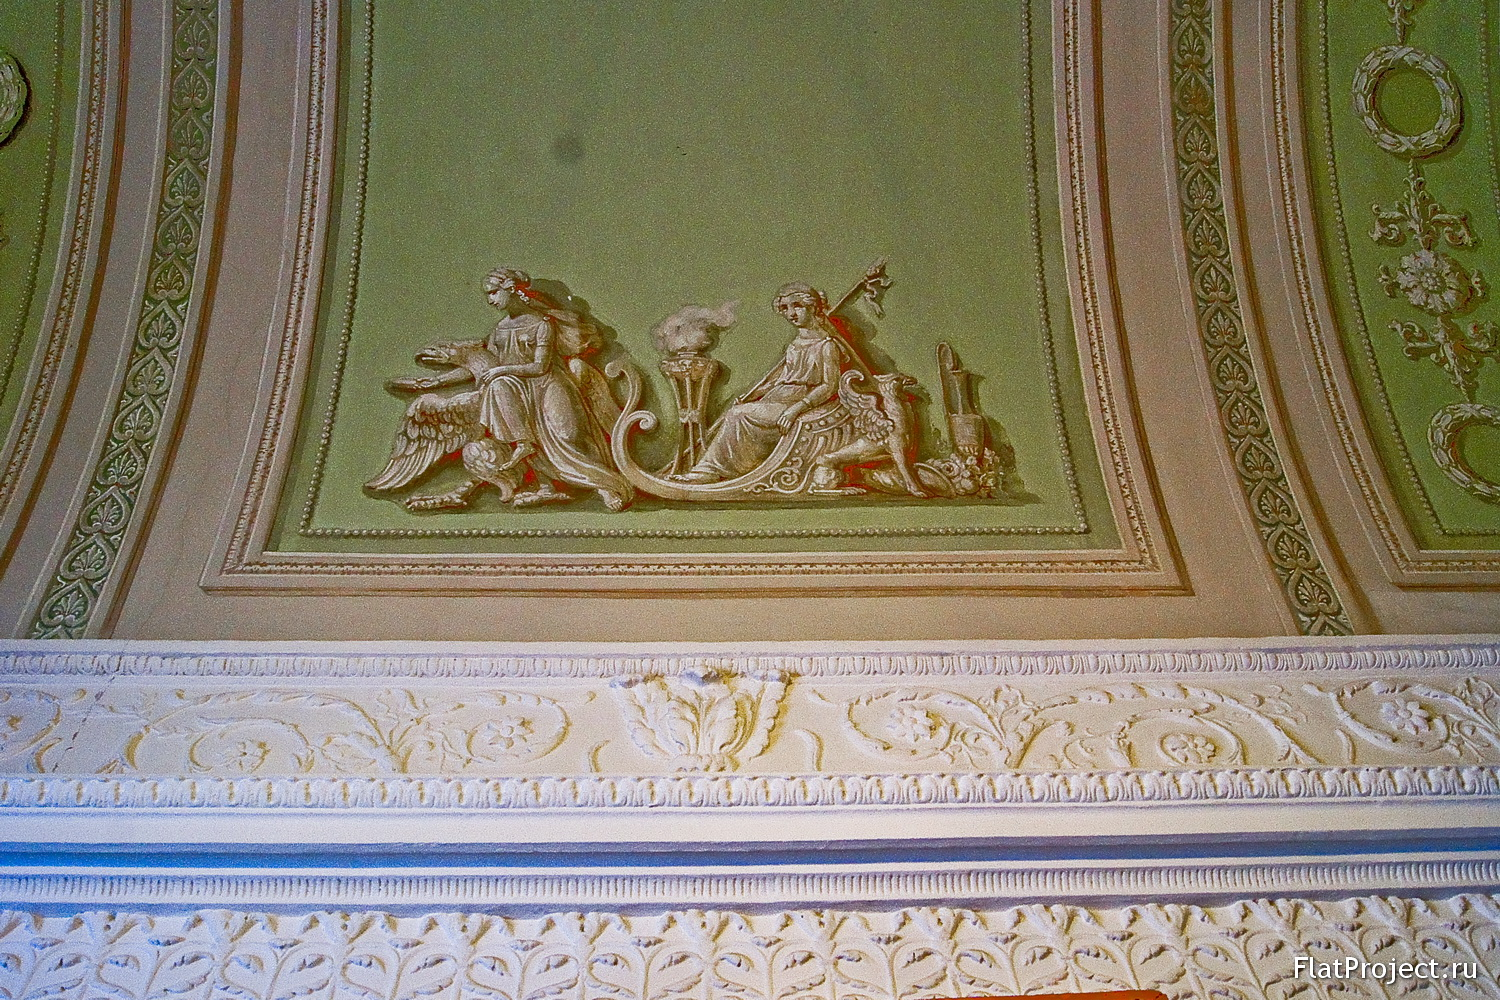 The Catherine Palace interiors – photo 23